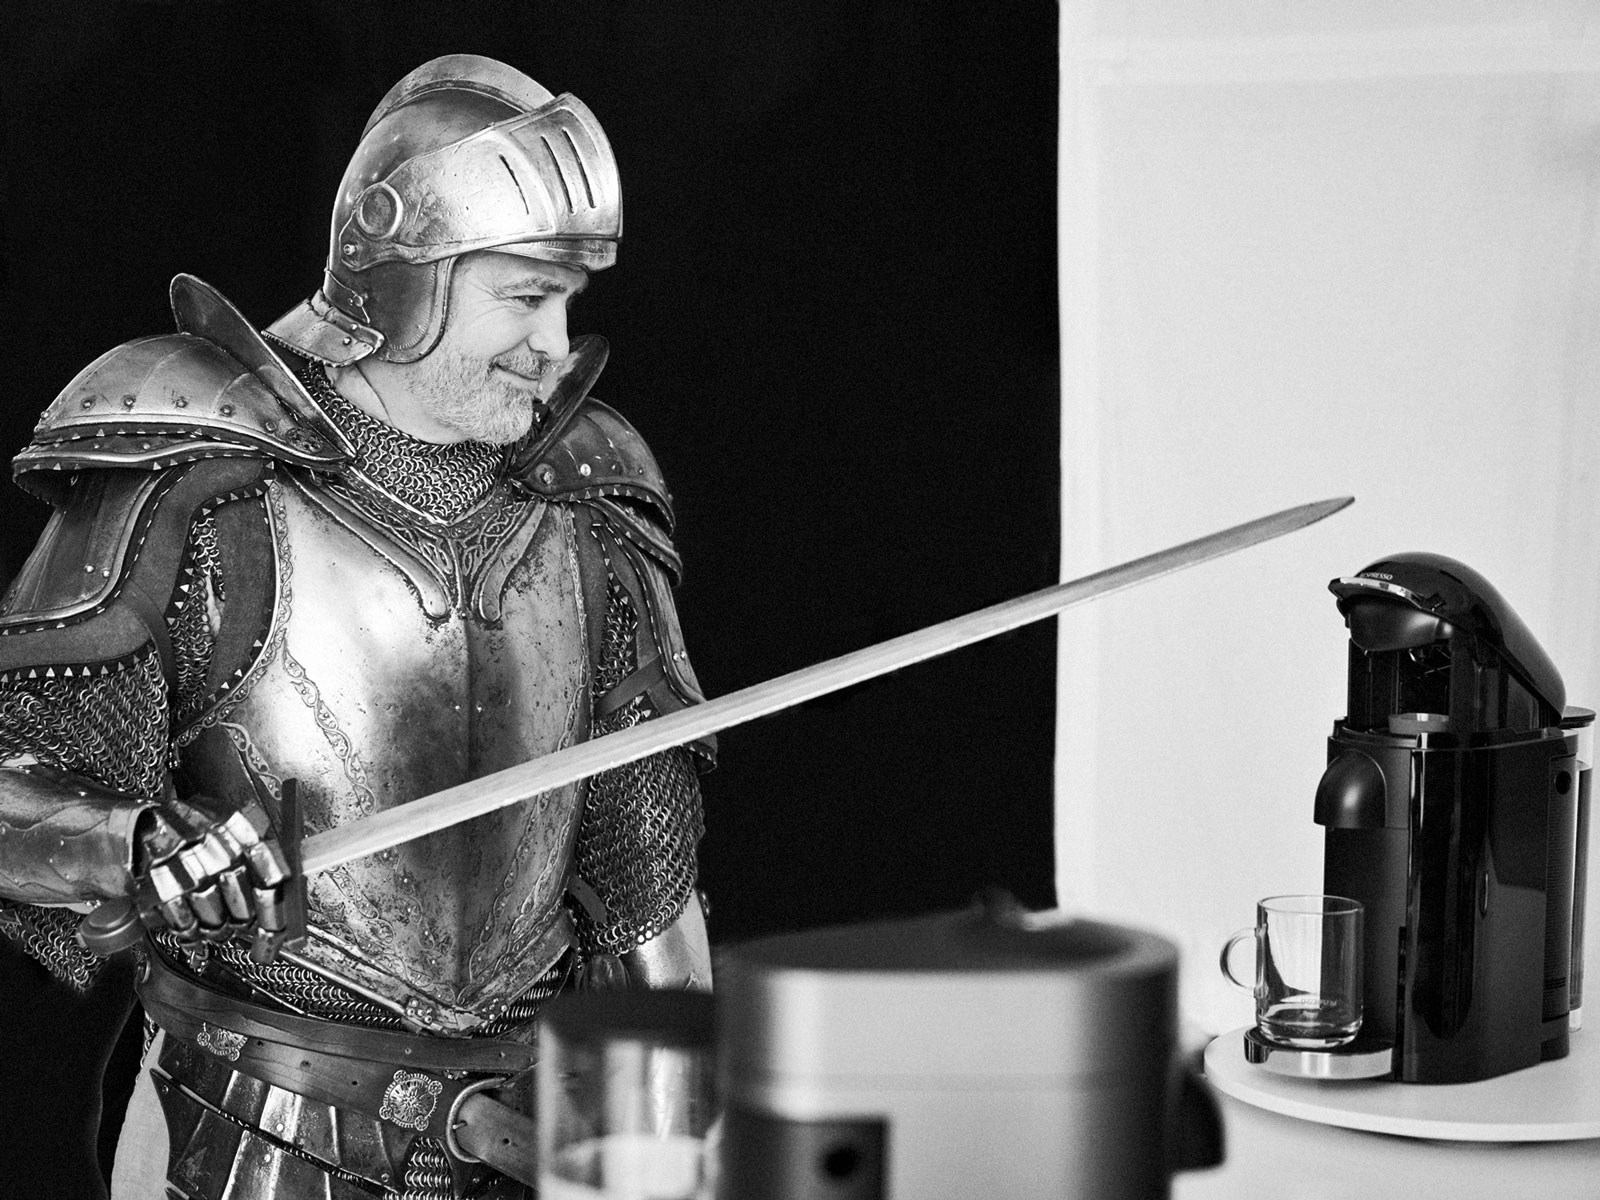 George Clooney Channels 'Game of Thrones' in Latest Nespresso Ad